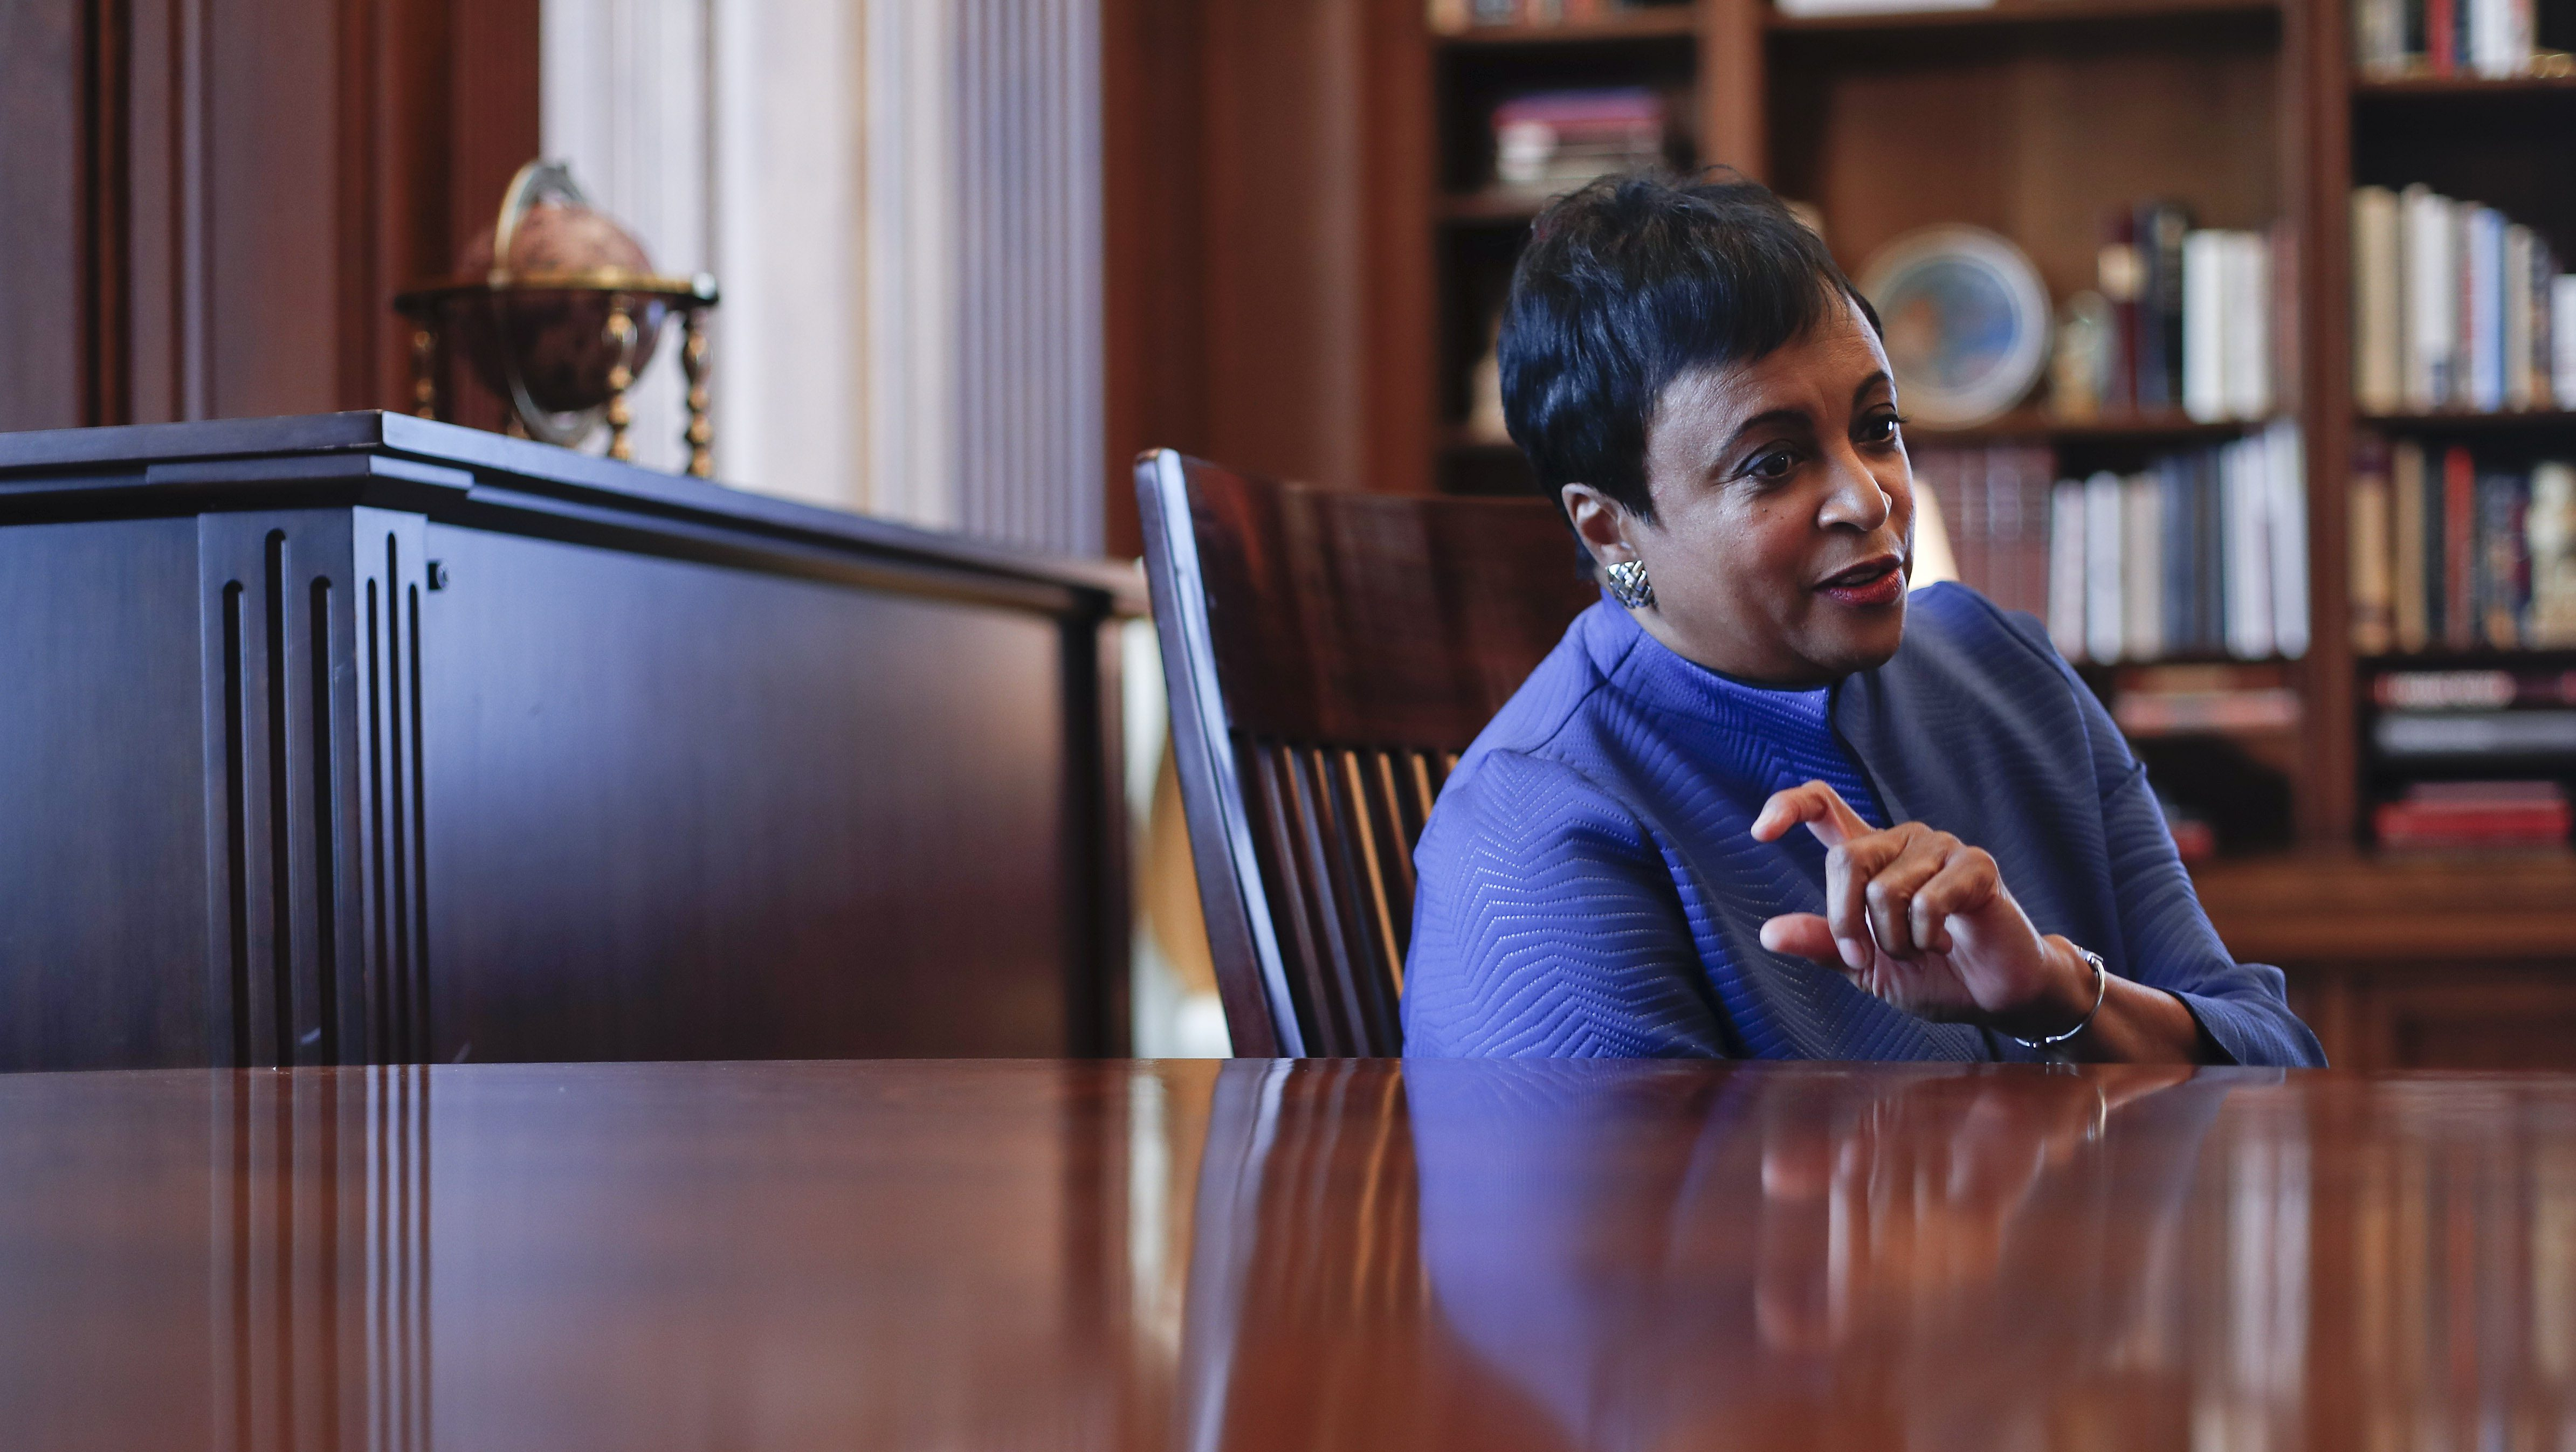 The 14th Librarian of Congress, Carla Hayden, during her interview with the Associated Press after a ceremony at the Library of Congress, where she took the oath of office, Wednesday, Sept. 14, 2016. Hayden, a former Chicago children's librarian, is the first woman and African American to serve in the role. (AP Photo/Pablo Martinez Monsivais)